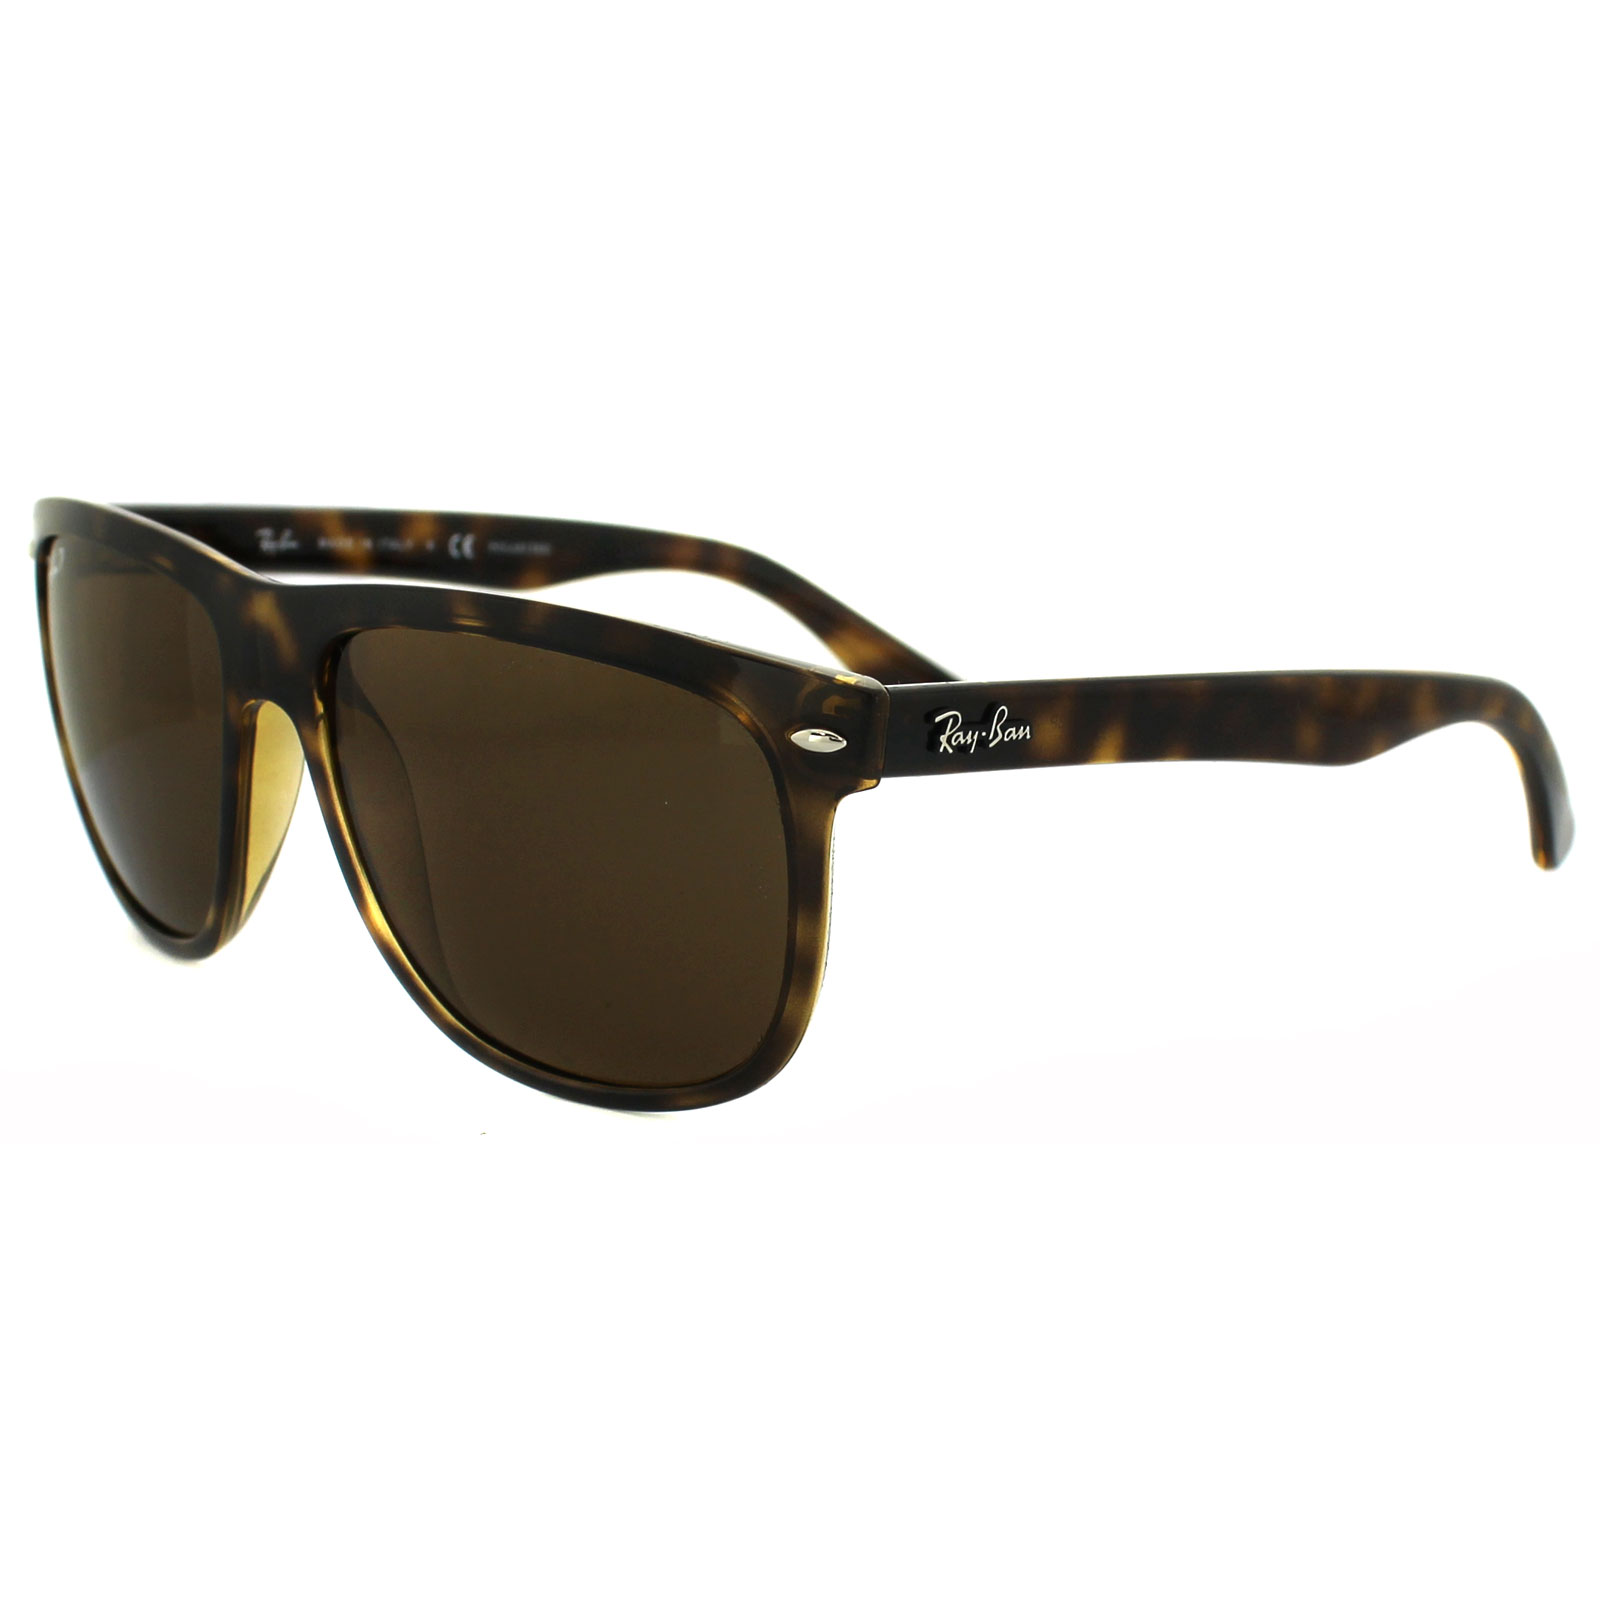 214ebc3c11 Ray Ban 4147 Brown Polarized « Heritage Malta